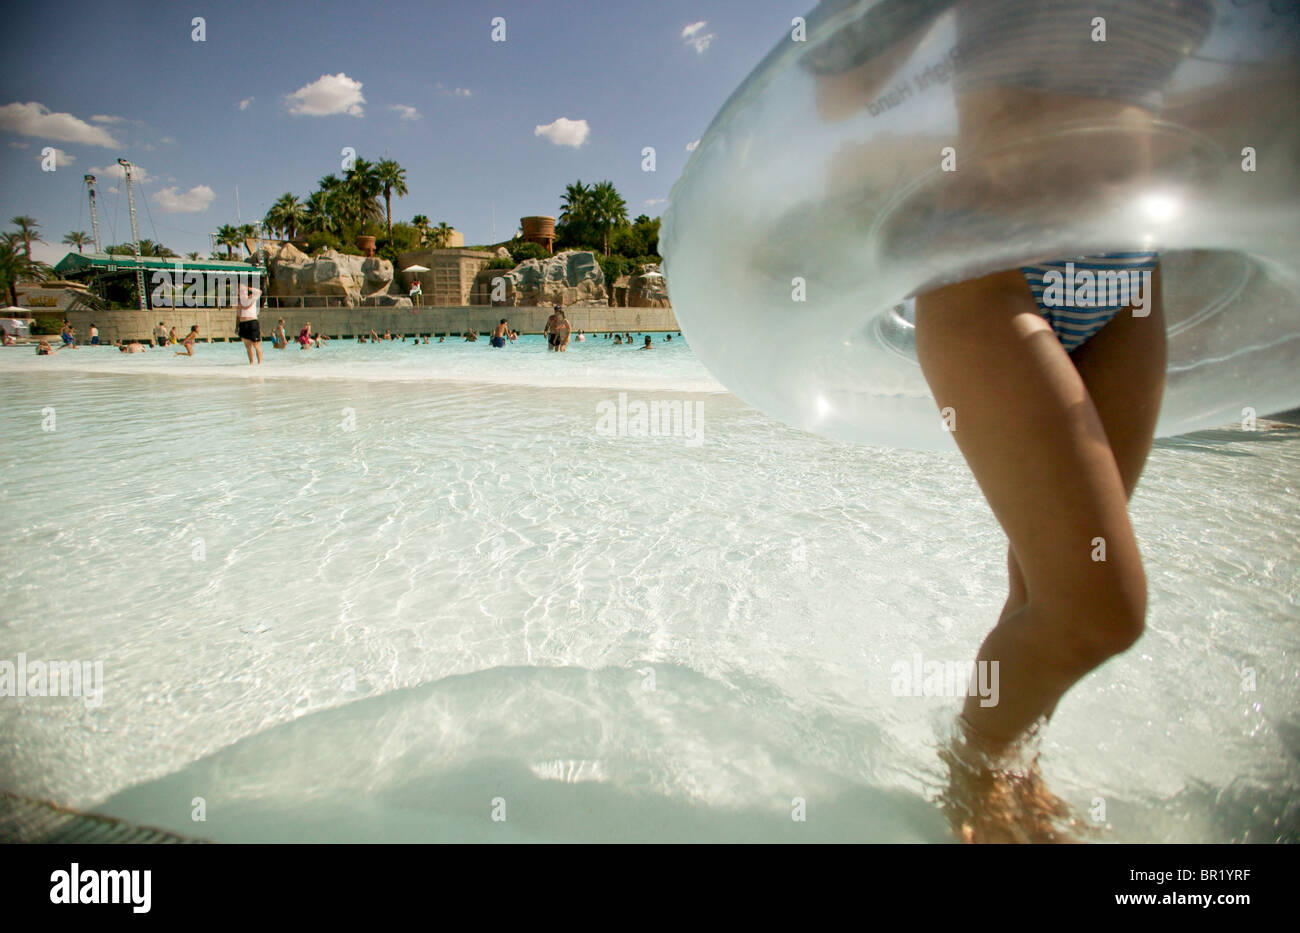 Girl running in pool with an inner tube around her waist. - Stock Image